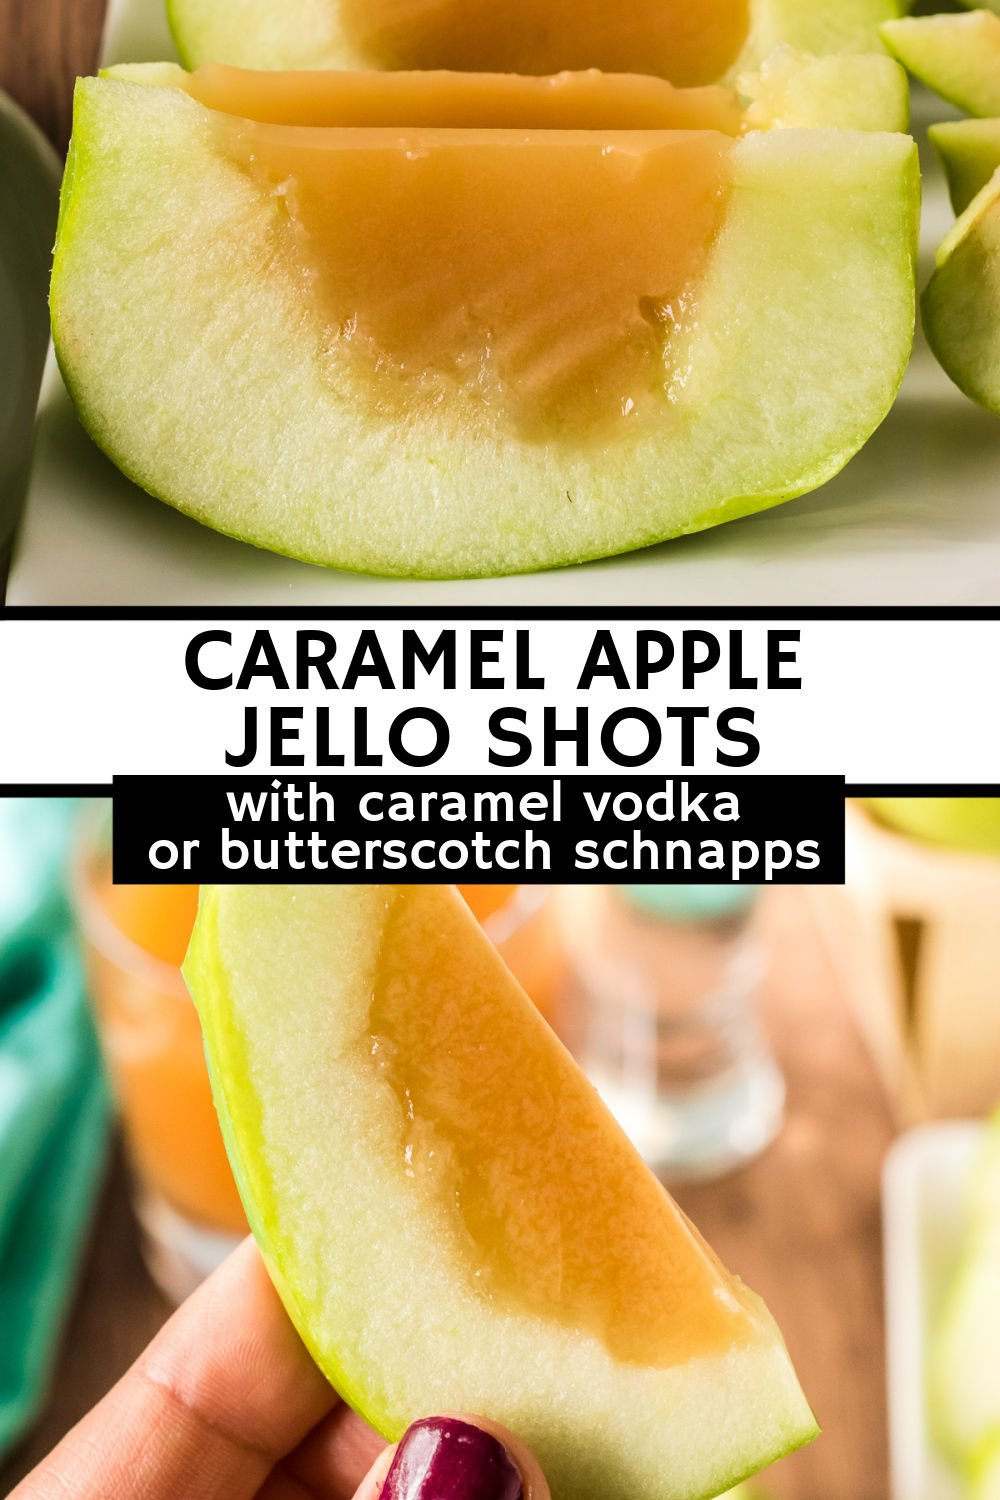 Caramel Apple Jello Shots, made inside a Granny Smith apple, can be made with either butterscotch schnapps or caramel flavored vodka. Fun, delicious, and perfect for a party or tailgate!   www.persnicketyplates.com